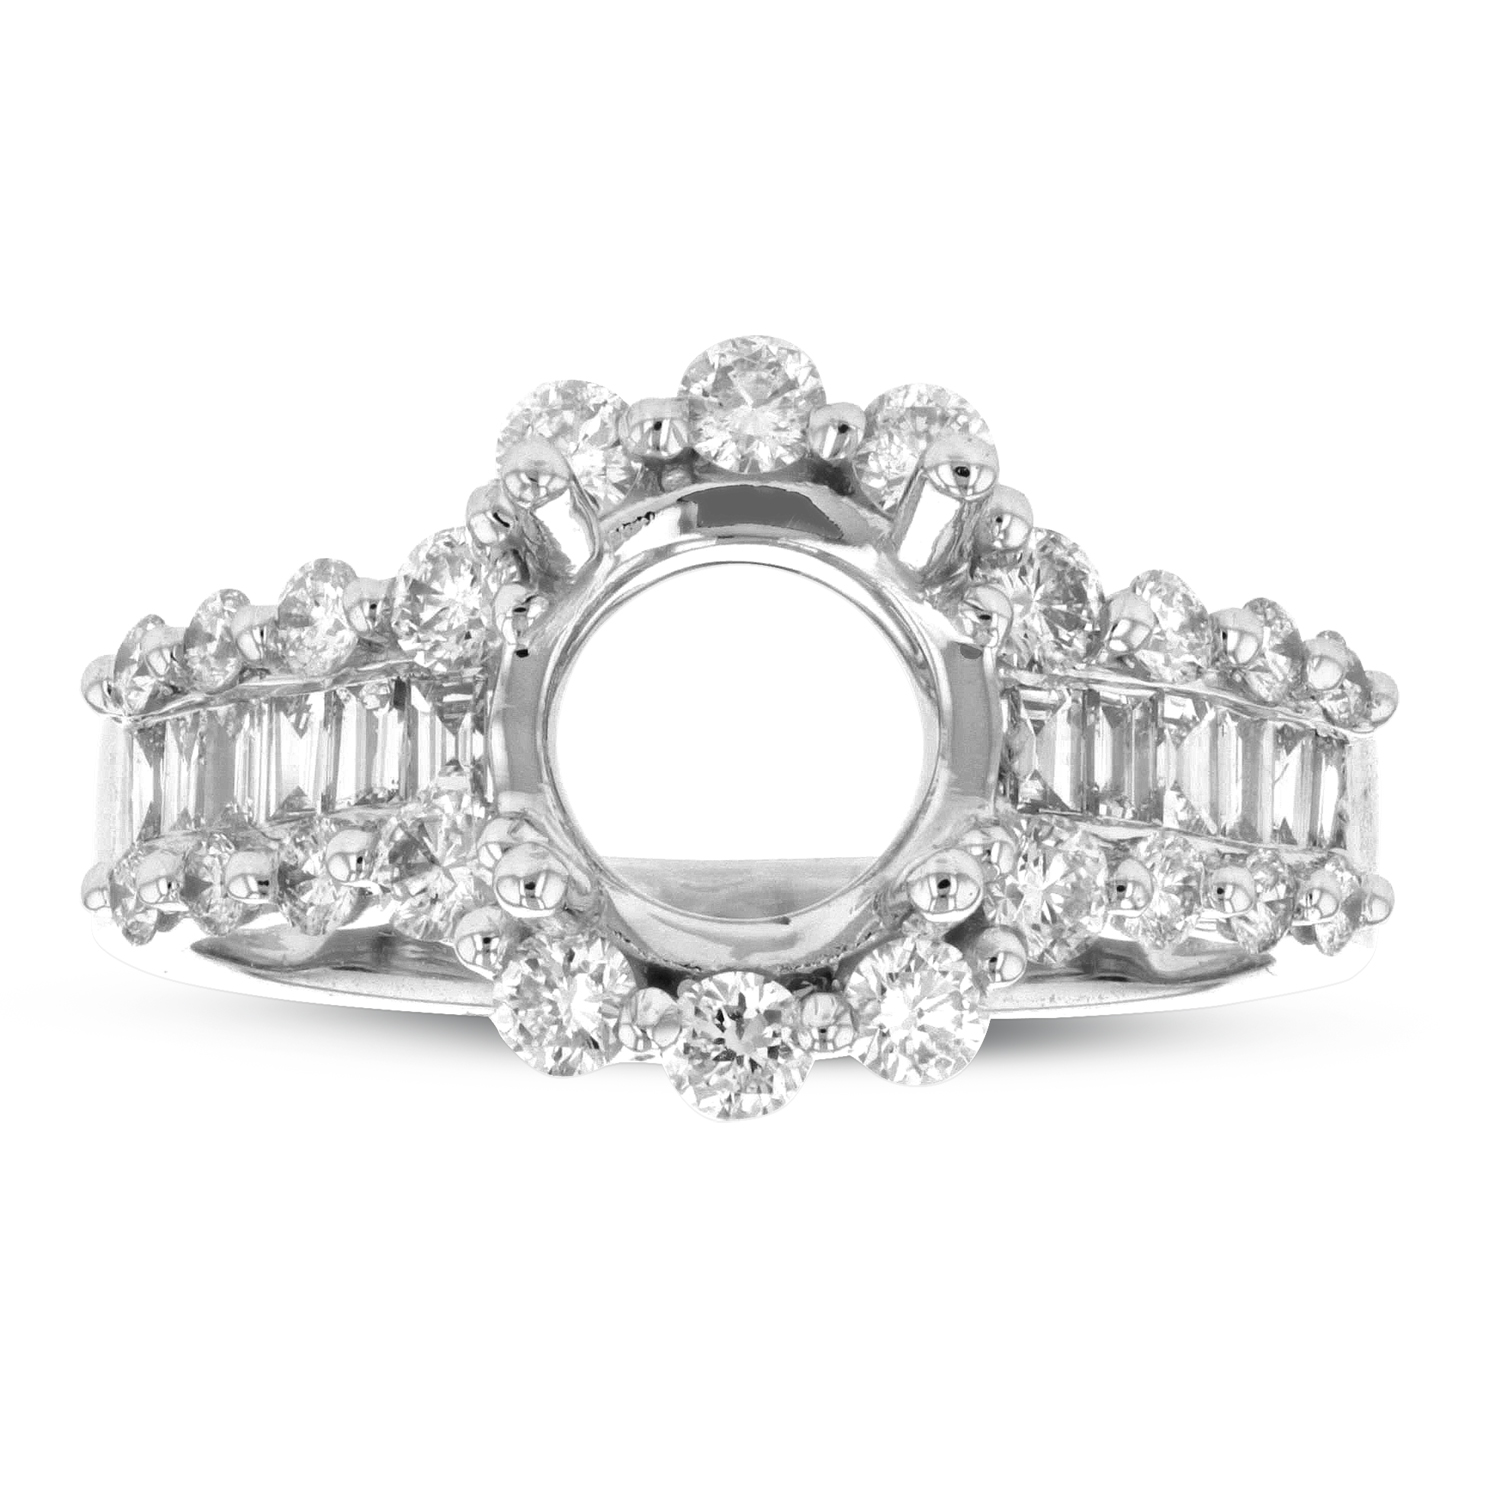 View 0.95ctw Diamond Semi Mount Ring in 18k White Gold